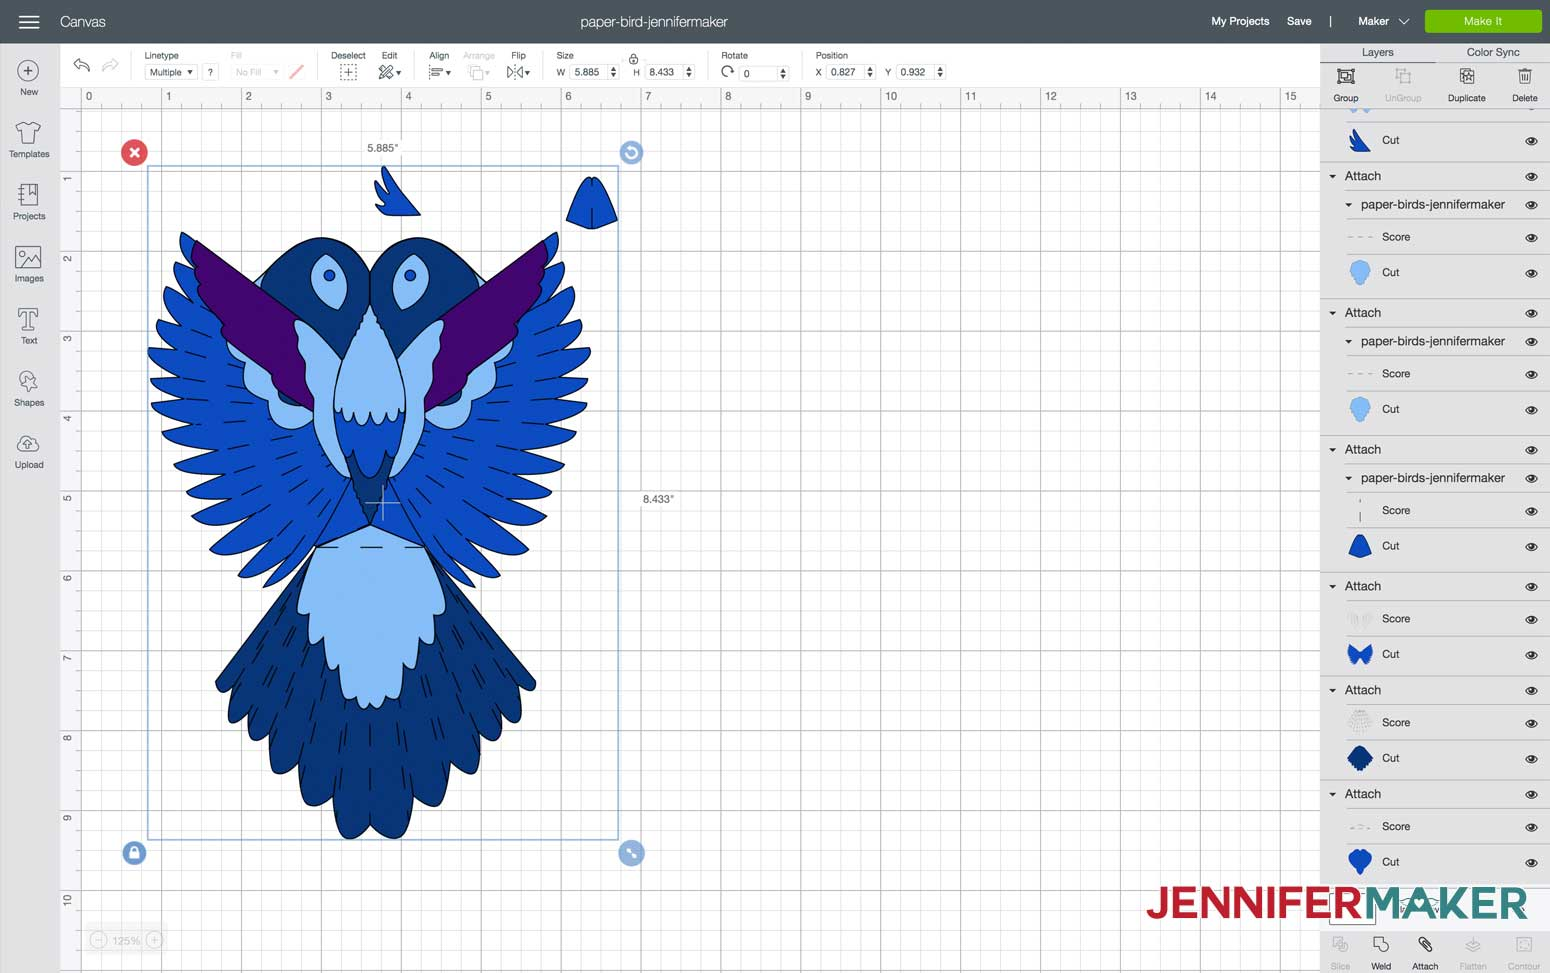 Import and set up SVG paper bird file in Design Space